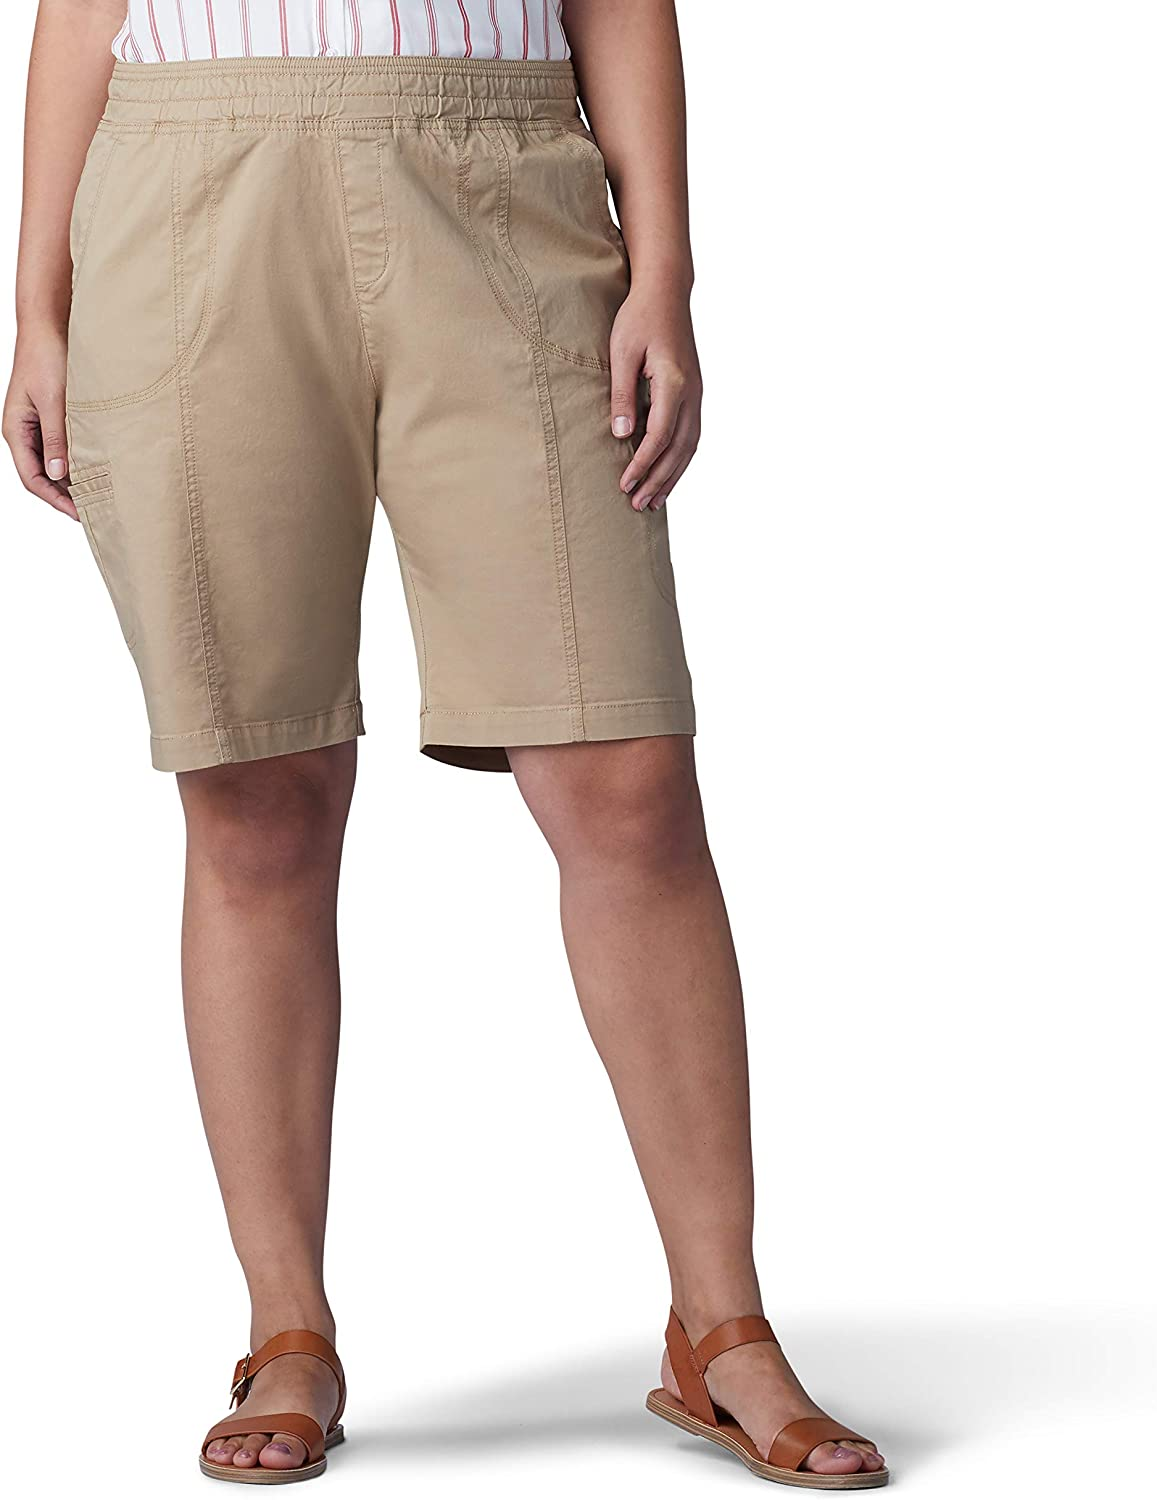 Lee OFFicial site Women's Plus Size Flex-to-go Cargo Challenge the lowest price of Japan Fit Pull-on Relaxed Bermu